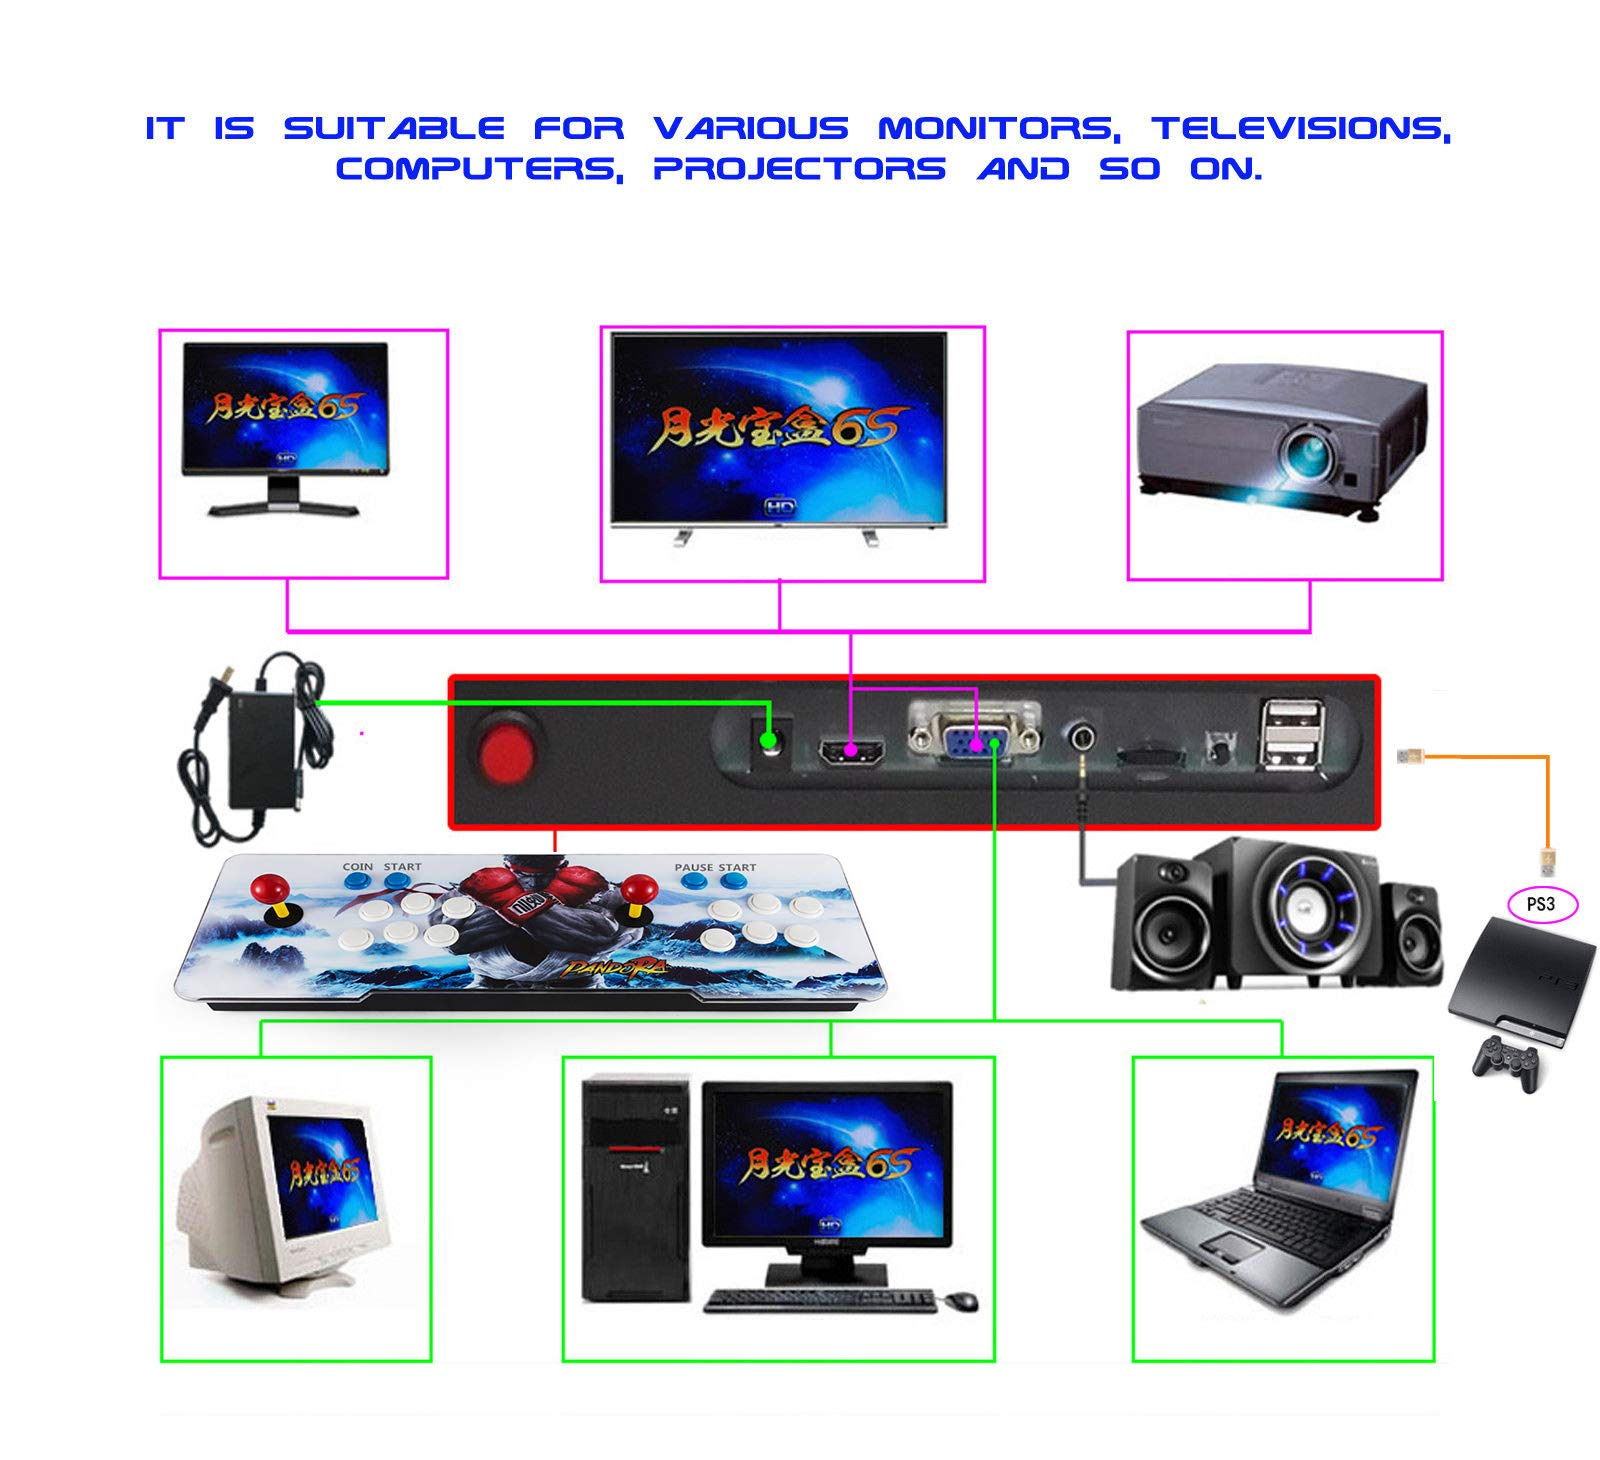 Barbella 2200 HD Arcade Game Console-3D Pandoras Box 6S Arcade Video Game 1080P Game System with 2190 Games Supports 3D Games 1920x1080 Full HD Support TF Card to Expand More Games for PC/TV/PS4 by Barbella (Image #2)